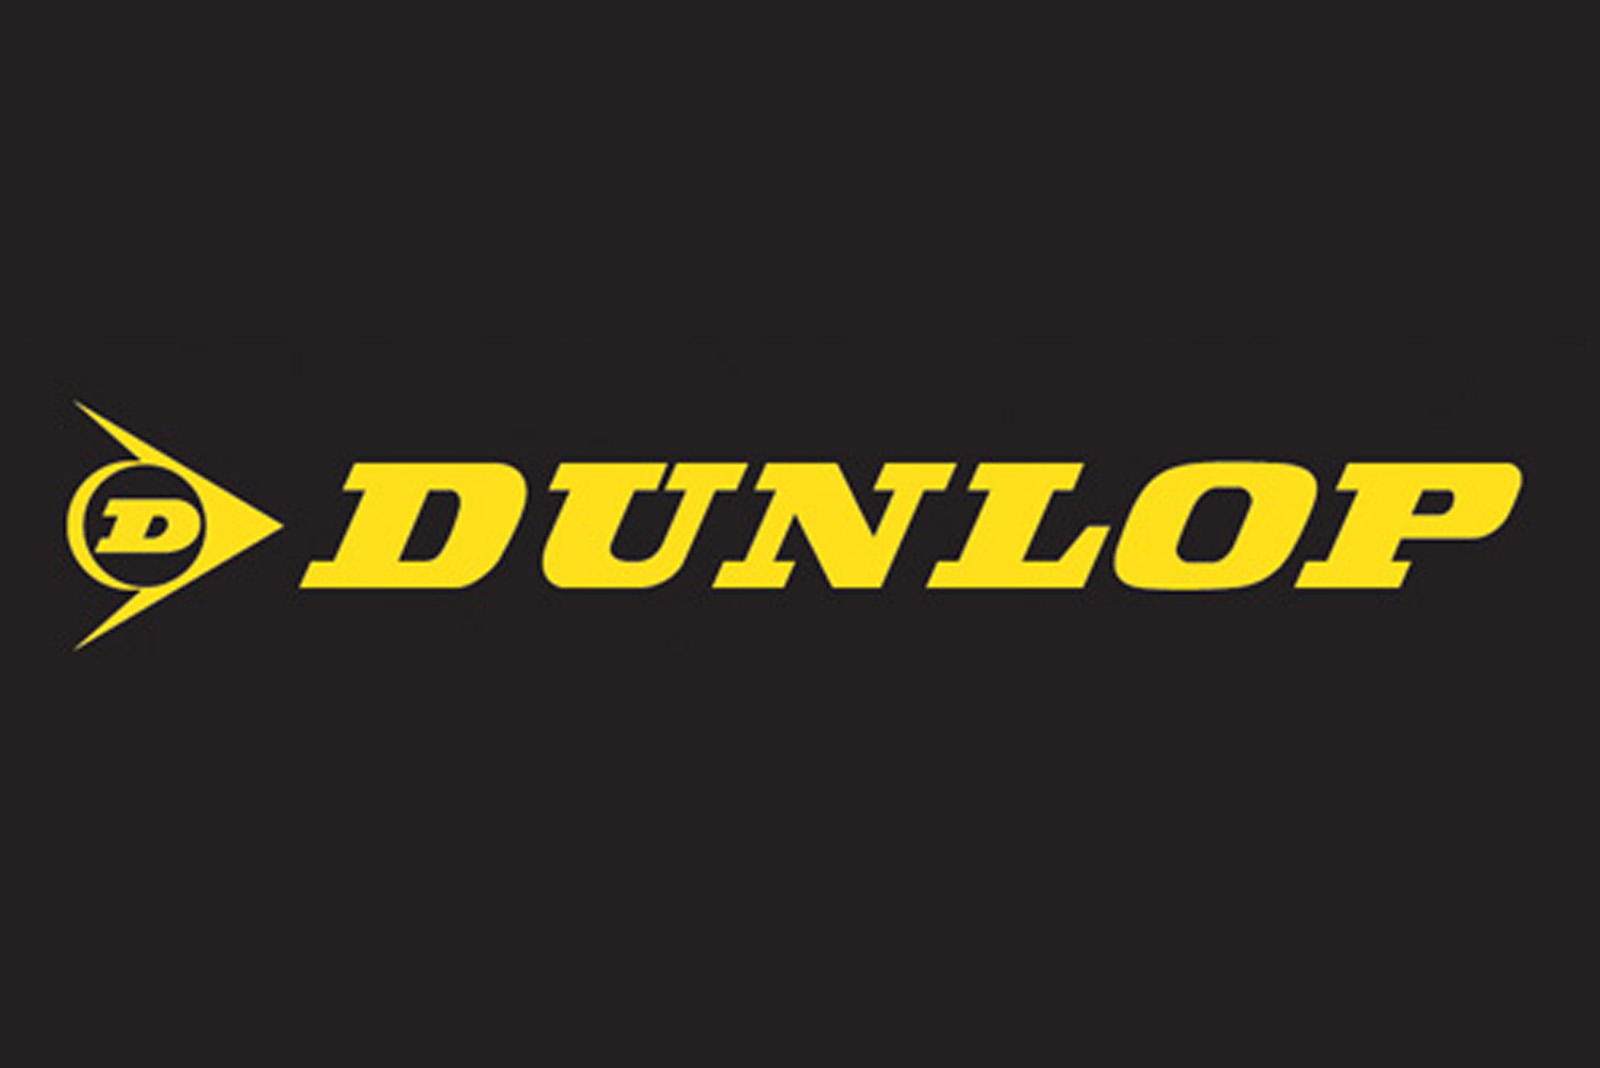 Win prizes and see fantastic demos with Dunlop!